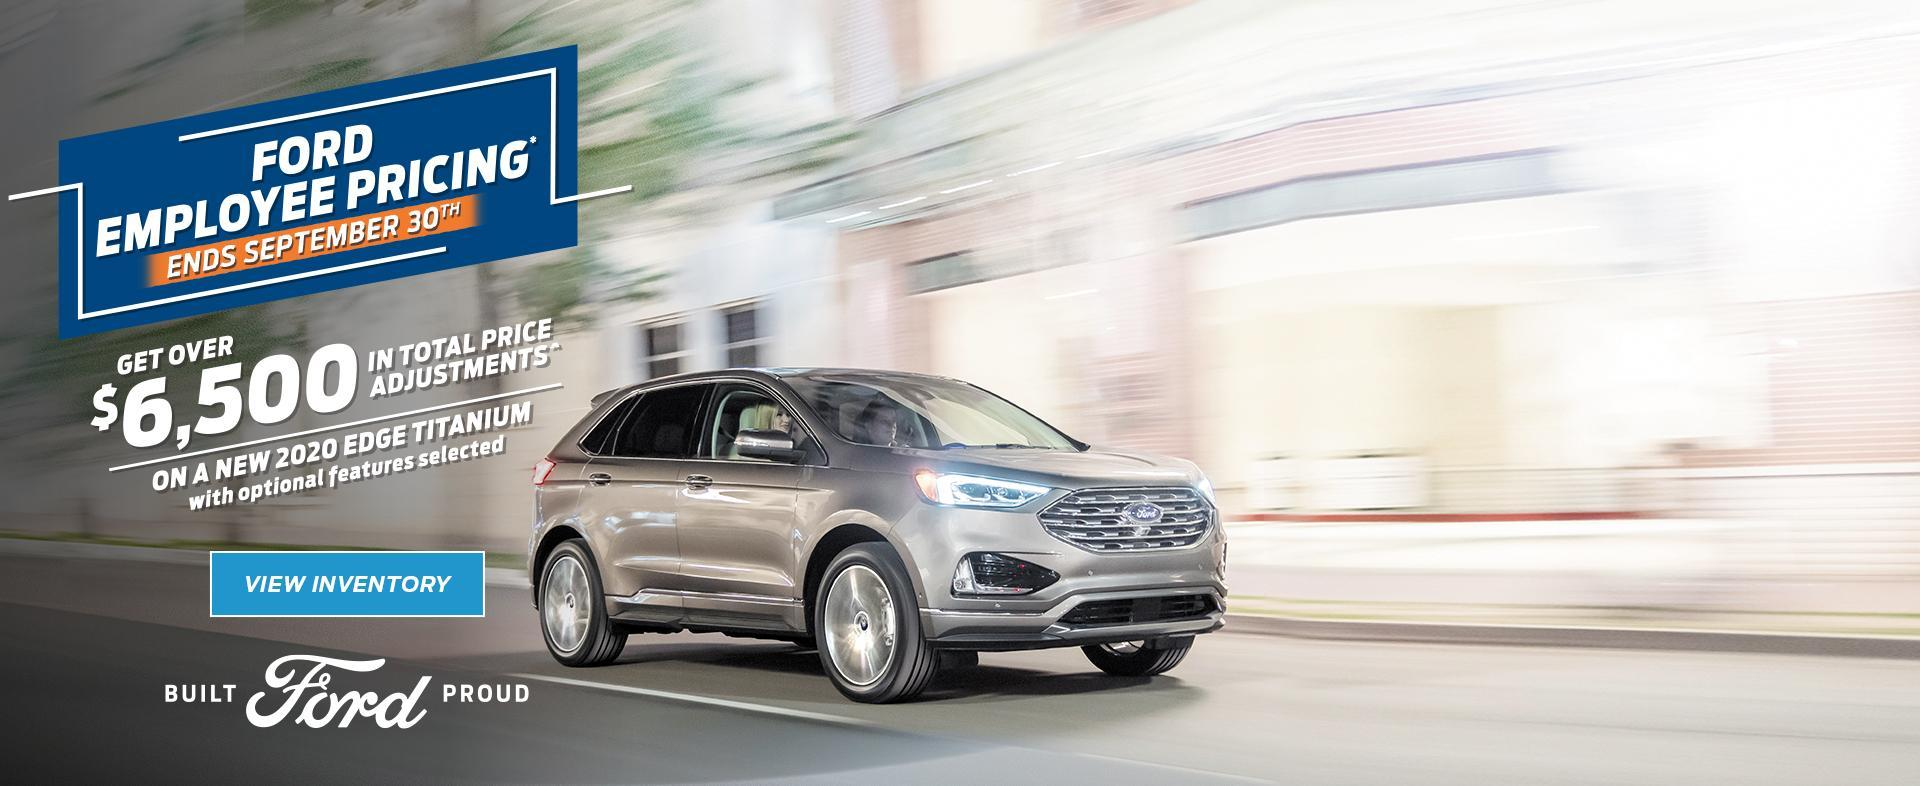 Ford Employee Pricing | Ford of Canada | 2020 Ford Edge